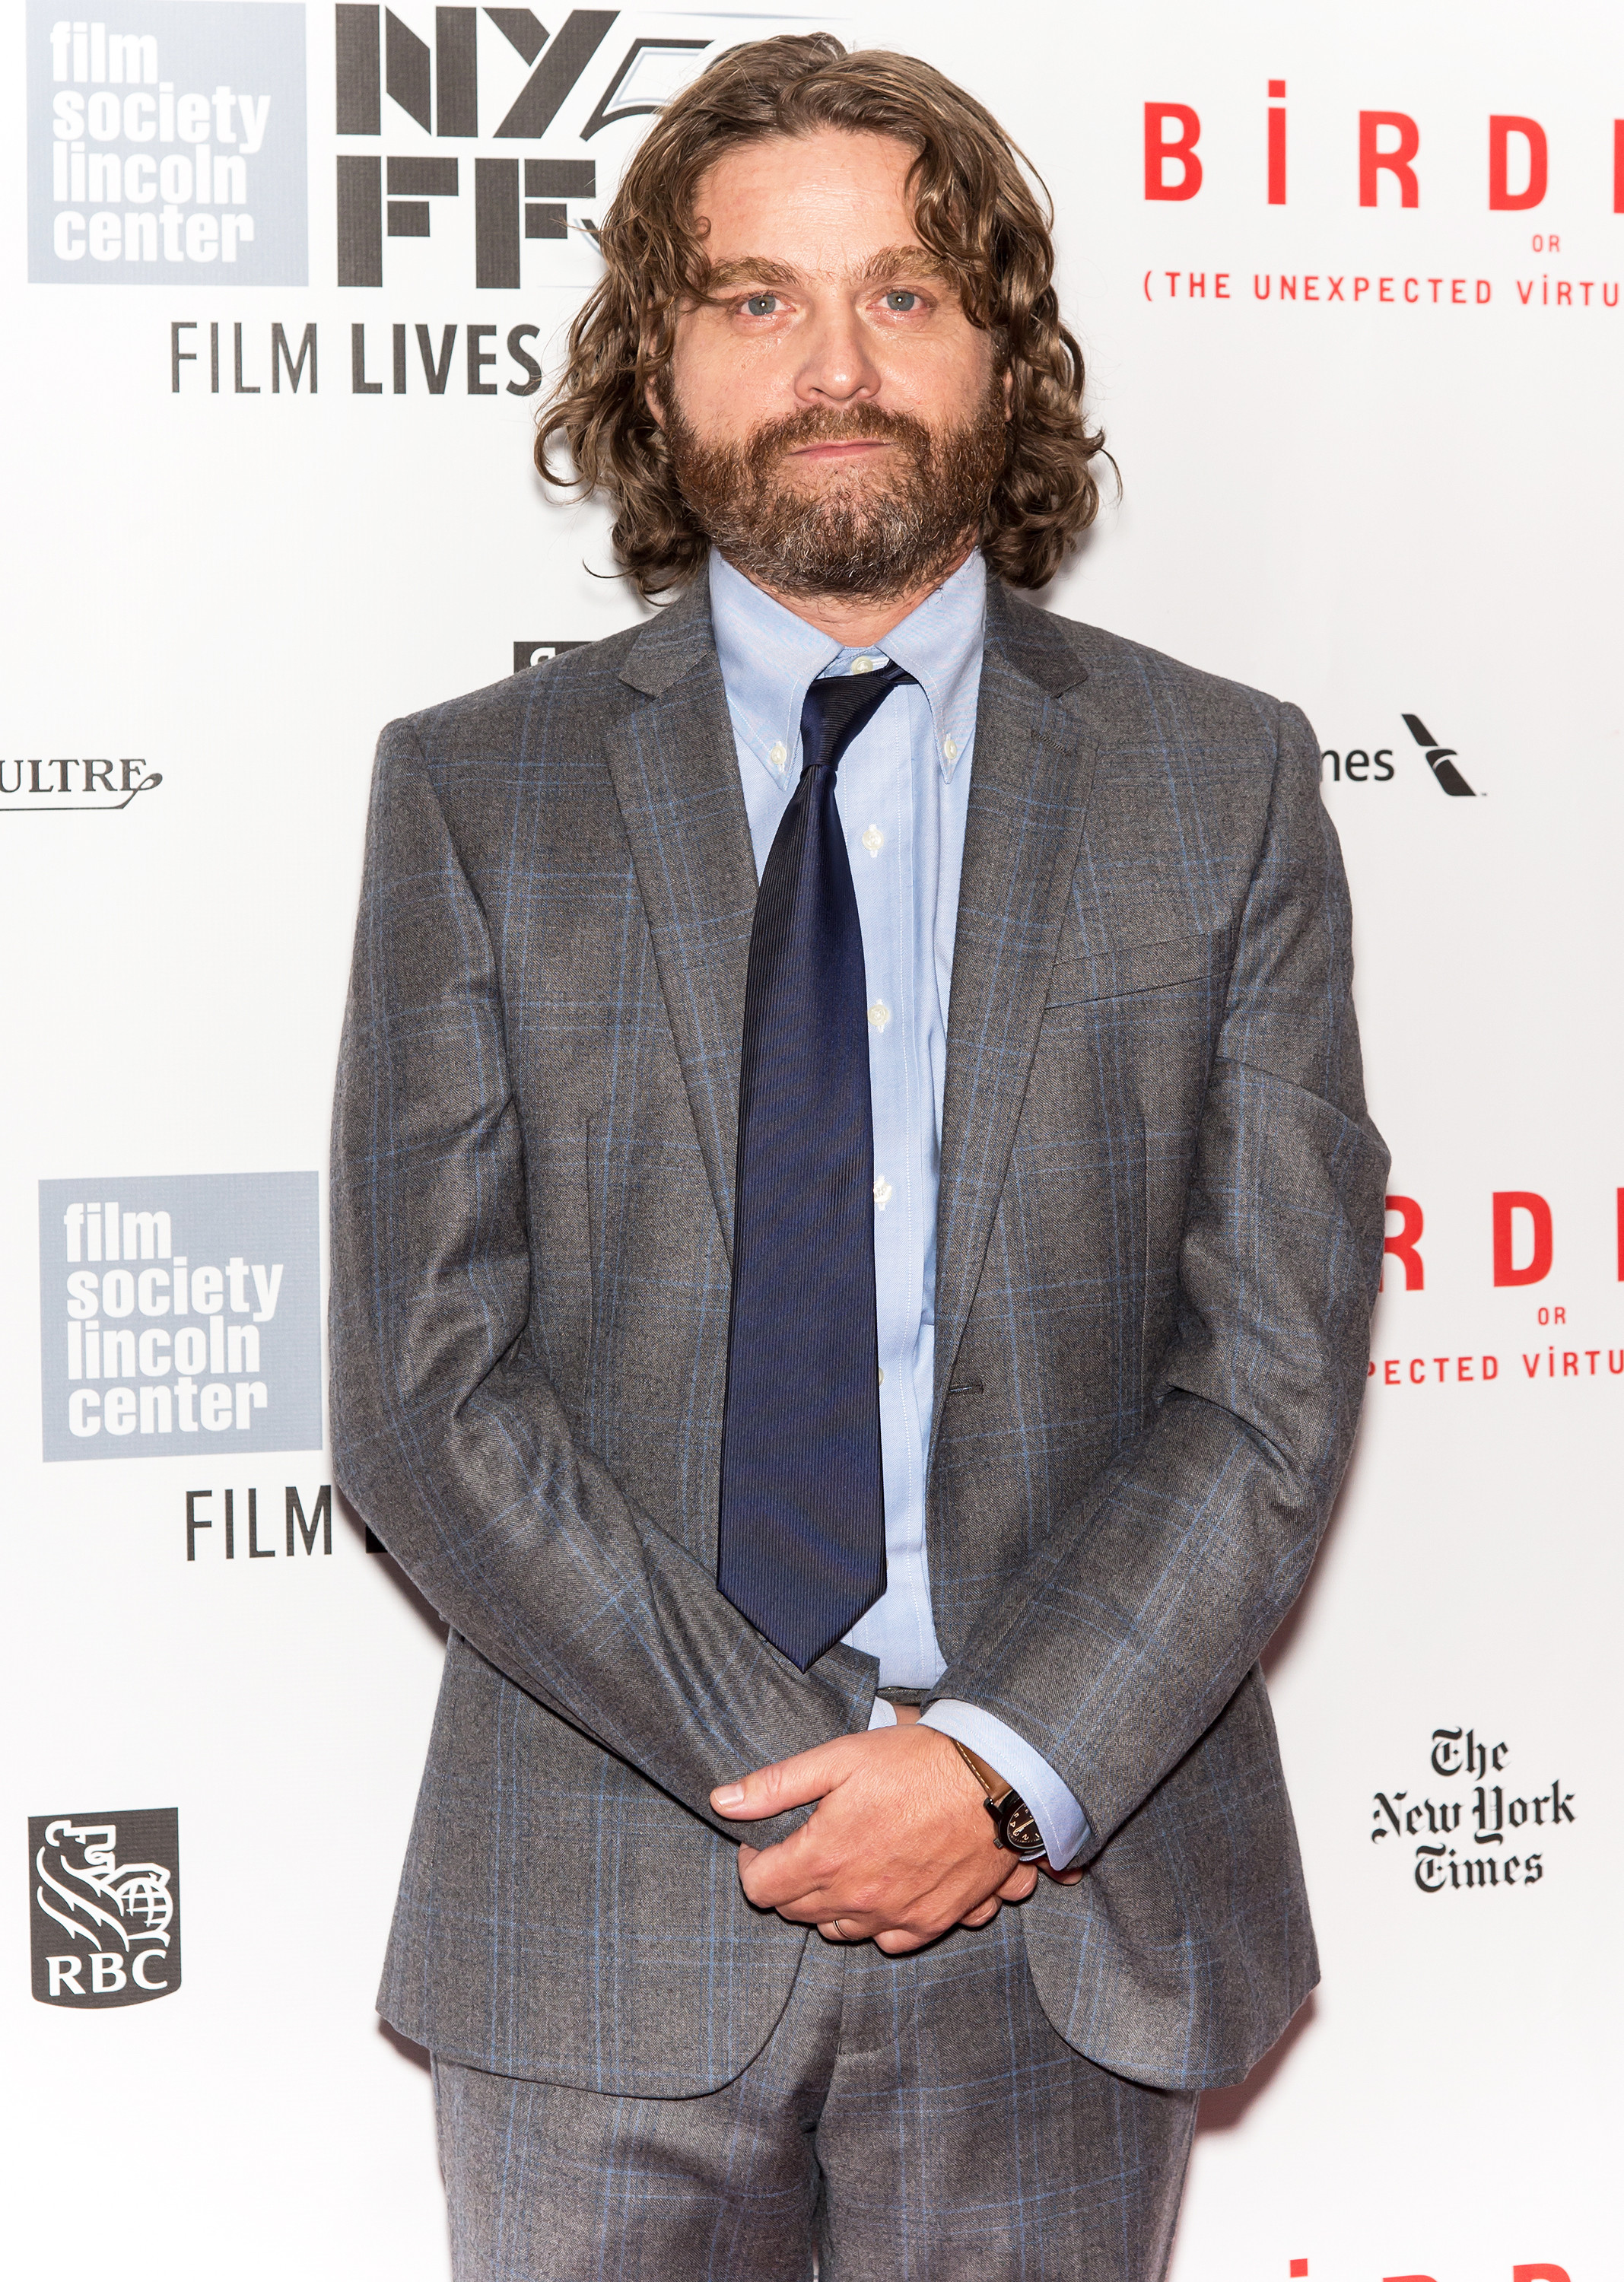 zach galifianakis wifezach galifianakis movies, zach galifianakis фильмы, zach galifianakis 2016, zach galifianakis laugh, zach galifianakis wife, zach galifianakis gif, zach galifianakis height, zach galifianakis math, zach galifianakis 2017, zach galifianakis похудел, zach galifianakis meme math, zach galifianakis films, zach galifianakis between two ferns, zach galifianakis filmleri, zach galifianakis joker, zach galifianakis twitter, zach galifianakis young, zach galifianakis laugh scene, zach galifianakis wiki, zach galifianakis filme